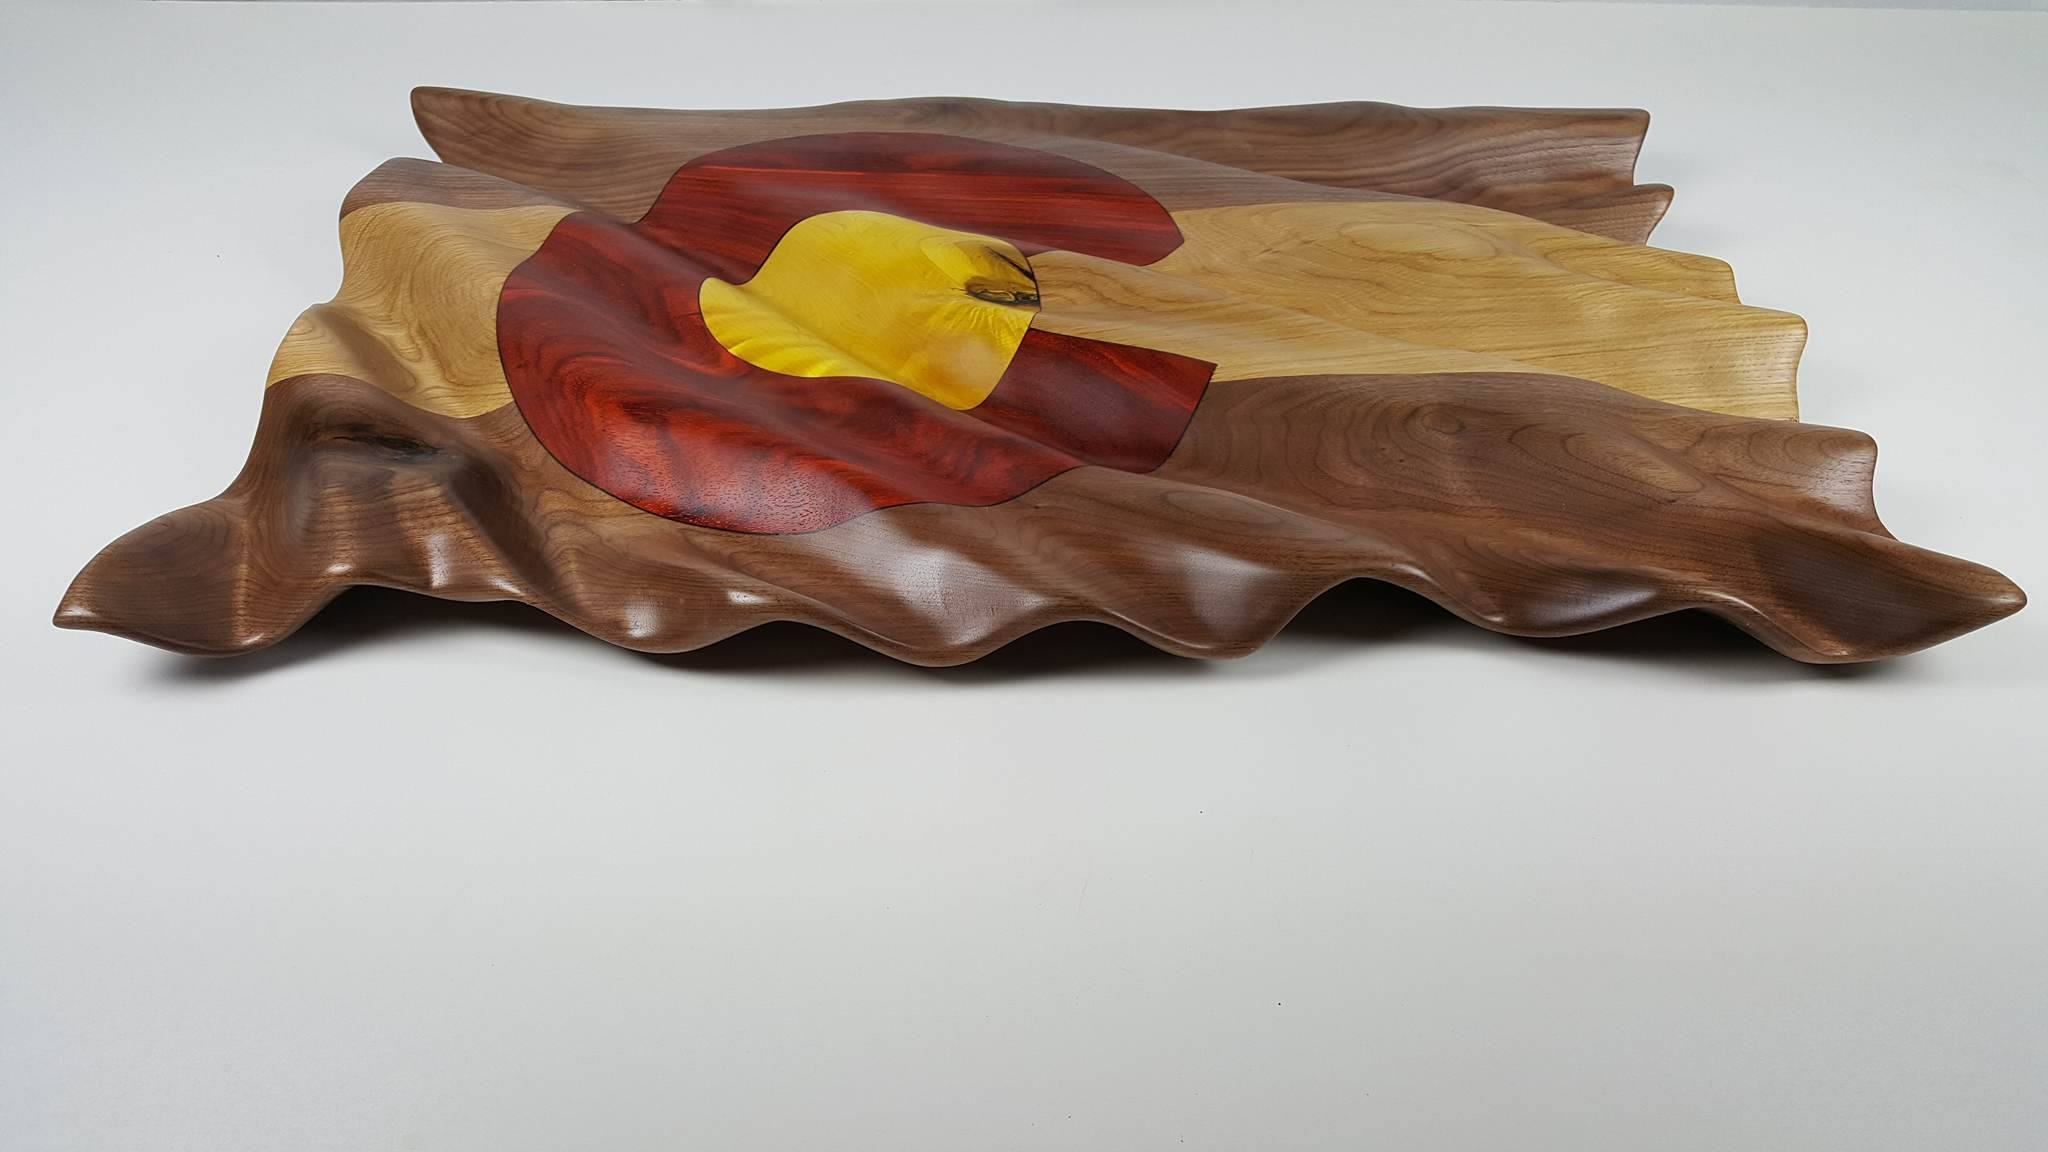 Carved Colorado Flag - Sculpture